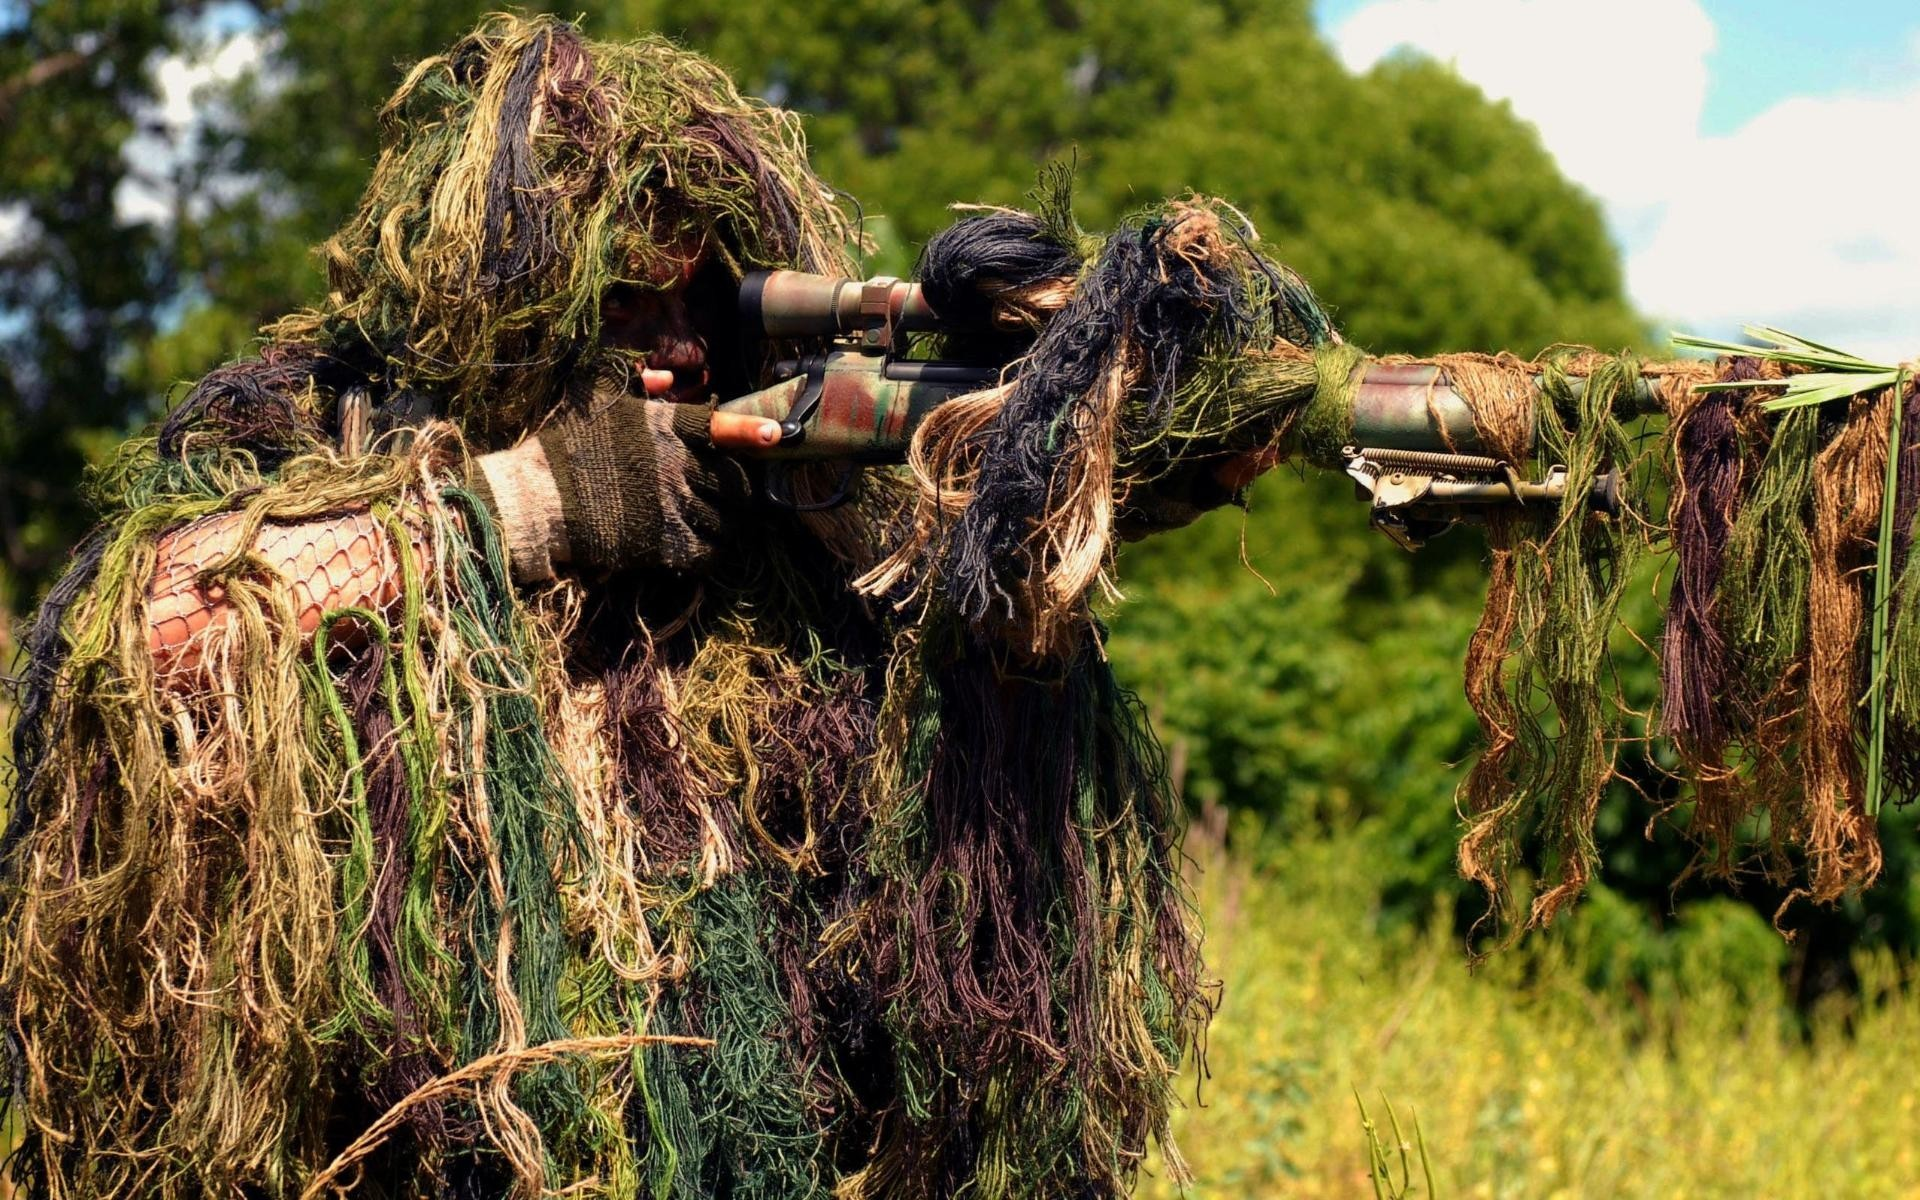 soldiers Army snipers camouflage HD Wallpaper